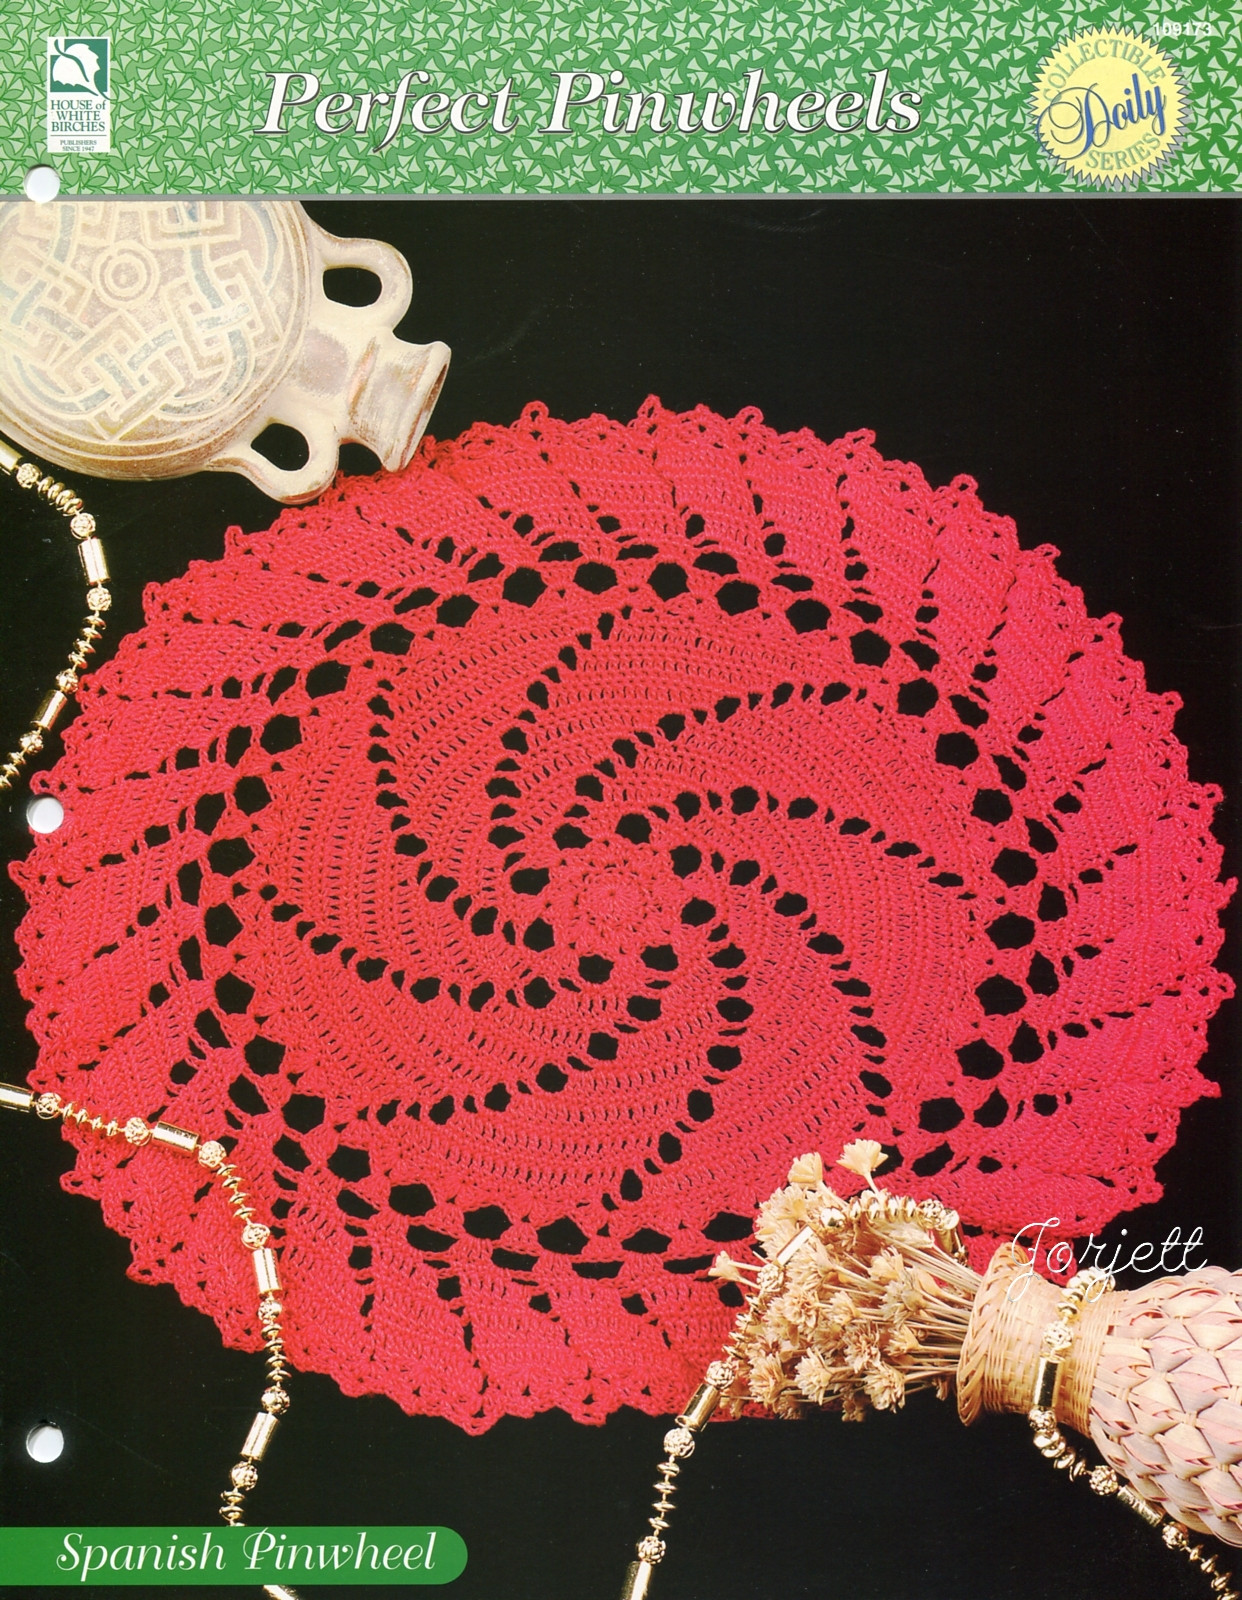 Crochet Patterns In Spanish : THIS ITEM IS CRAFT PATTERN(S) ~ WRITTEN INSTRUCTIONS TO MAKE IT ...